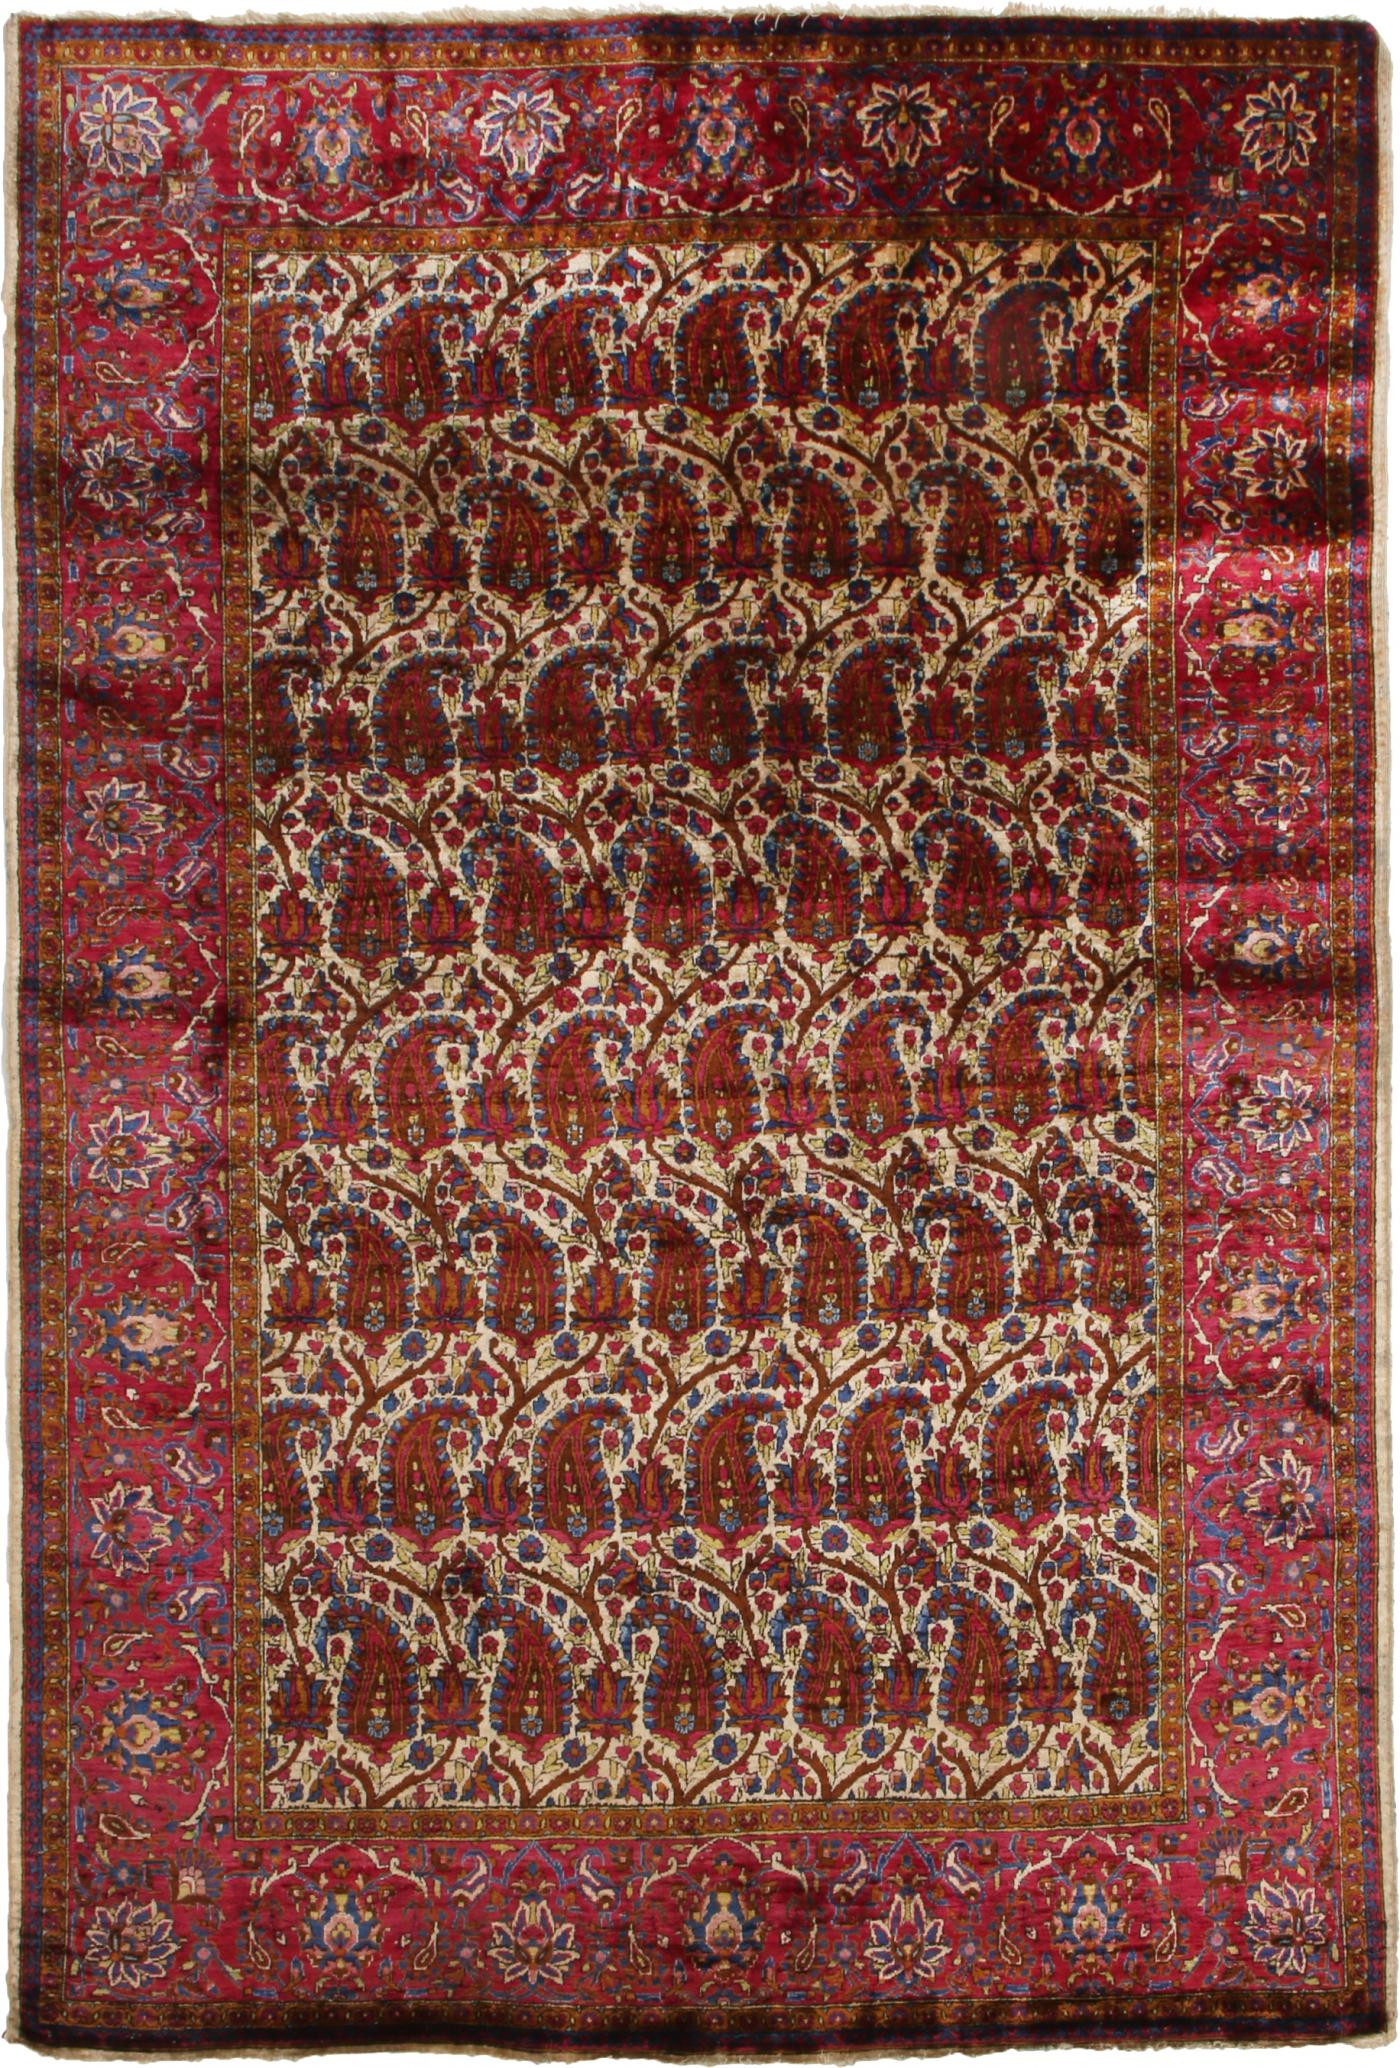 Antique Kashan Traditional Burgundy Red And Beige Wool Persian Rug